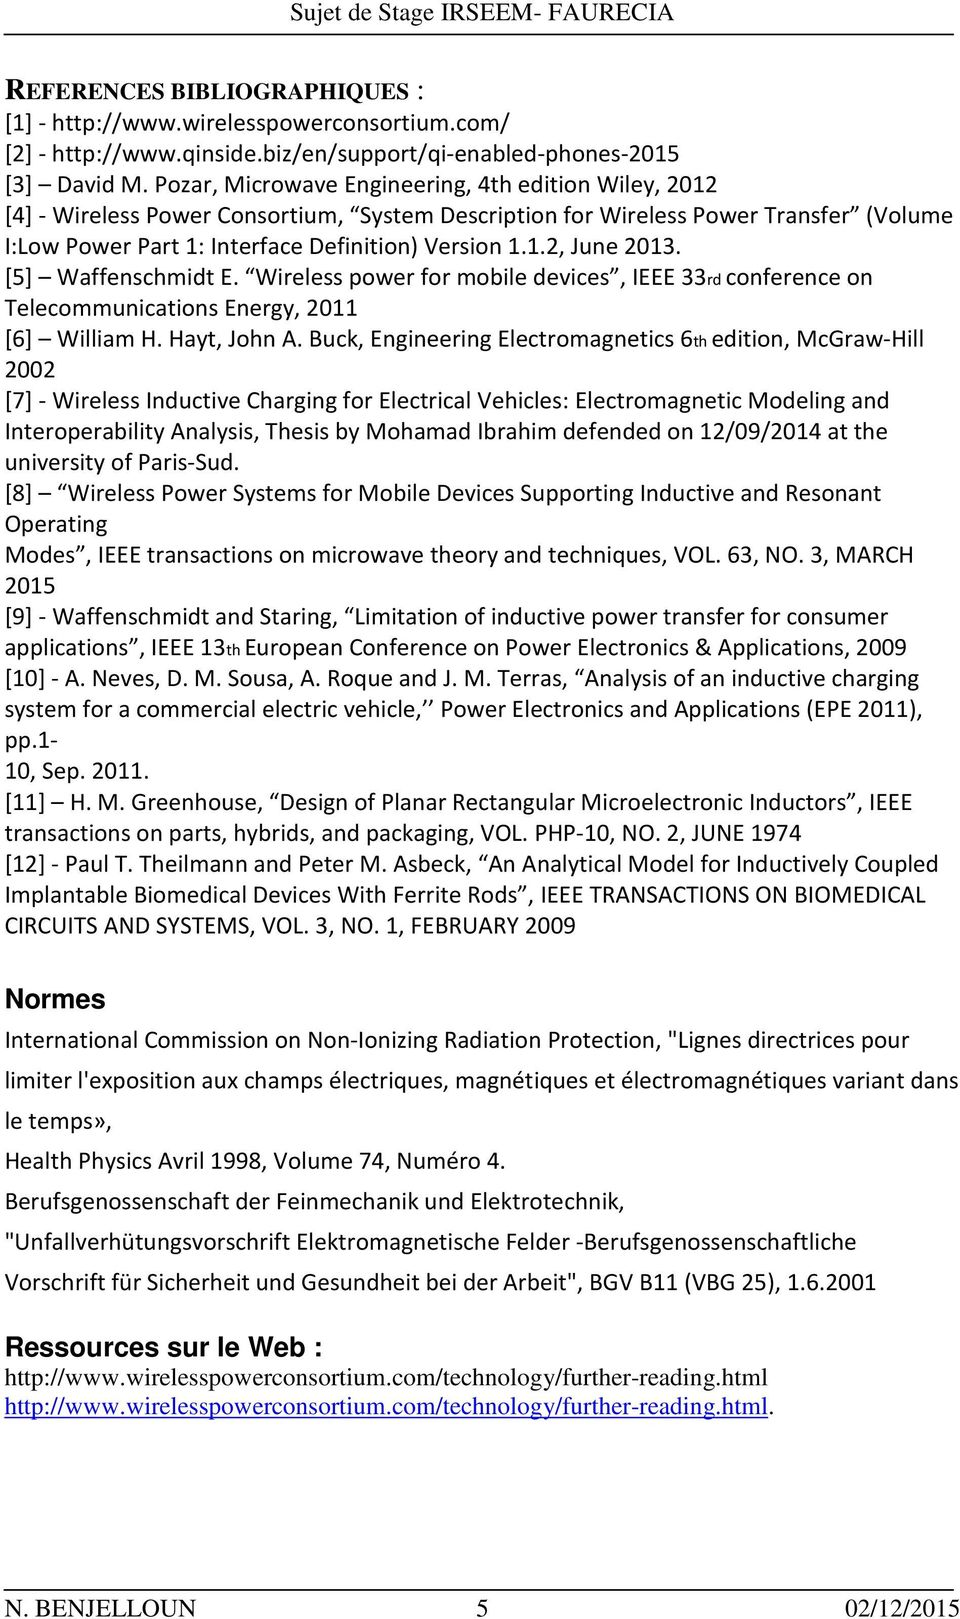 [5] Waffenschmidt E. Wireless power for mobile devices, IEEE 33rd conference on Telecommunications Energy, 2011 [6] William H. Hayt, John A.